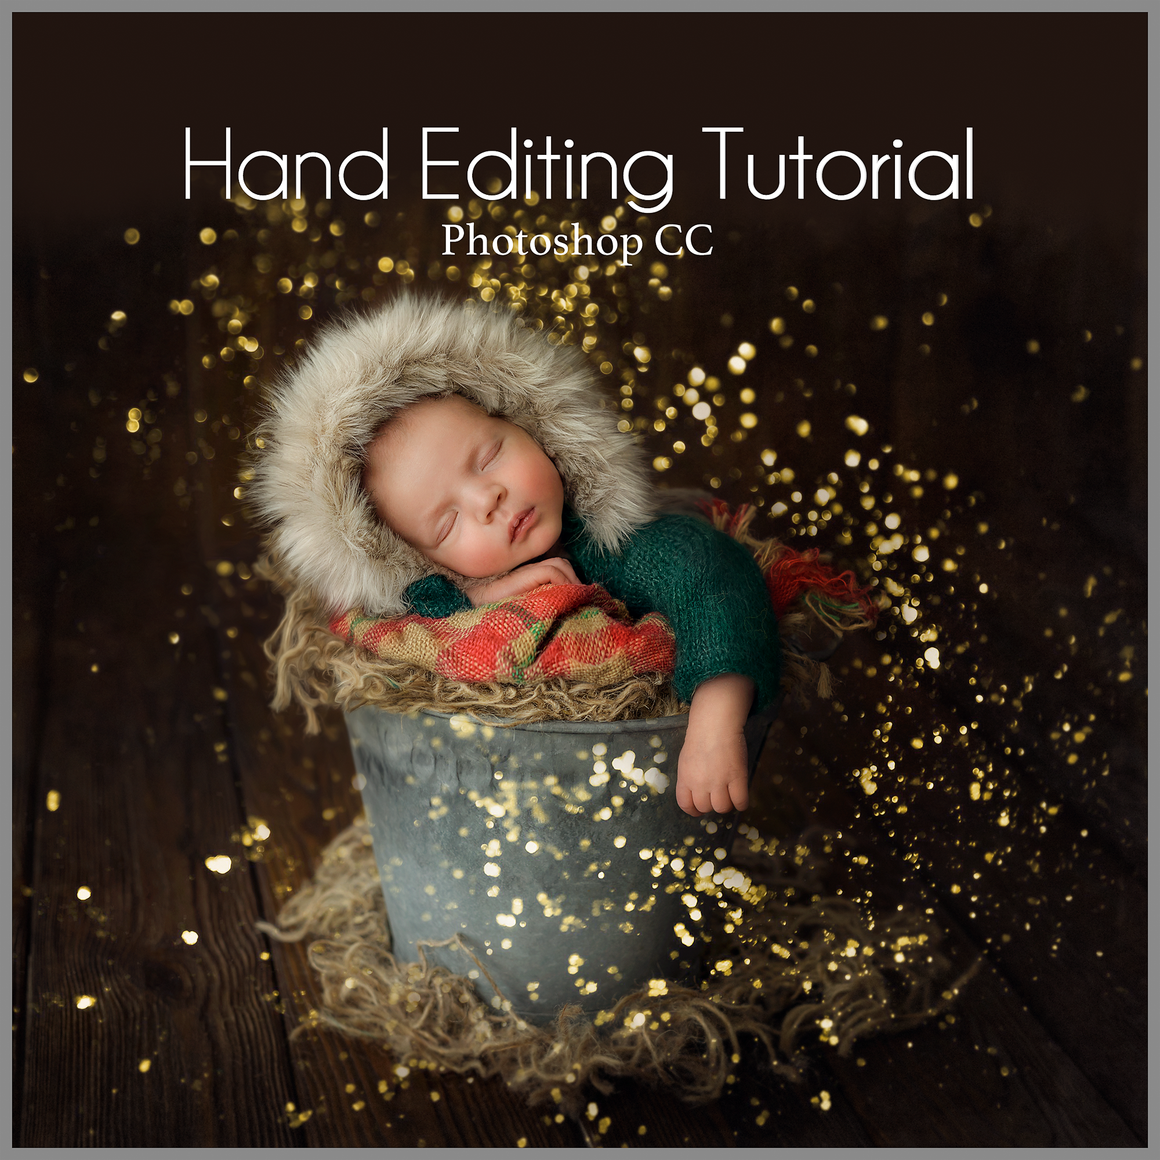 Magic Festive Glitter Newborn Editing Tutorial | Photoshop Class - Dream Artsy Actions Tutorials